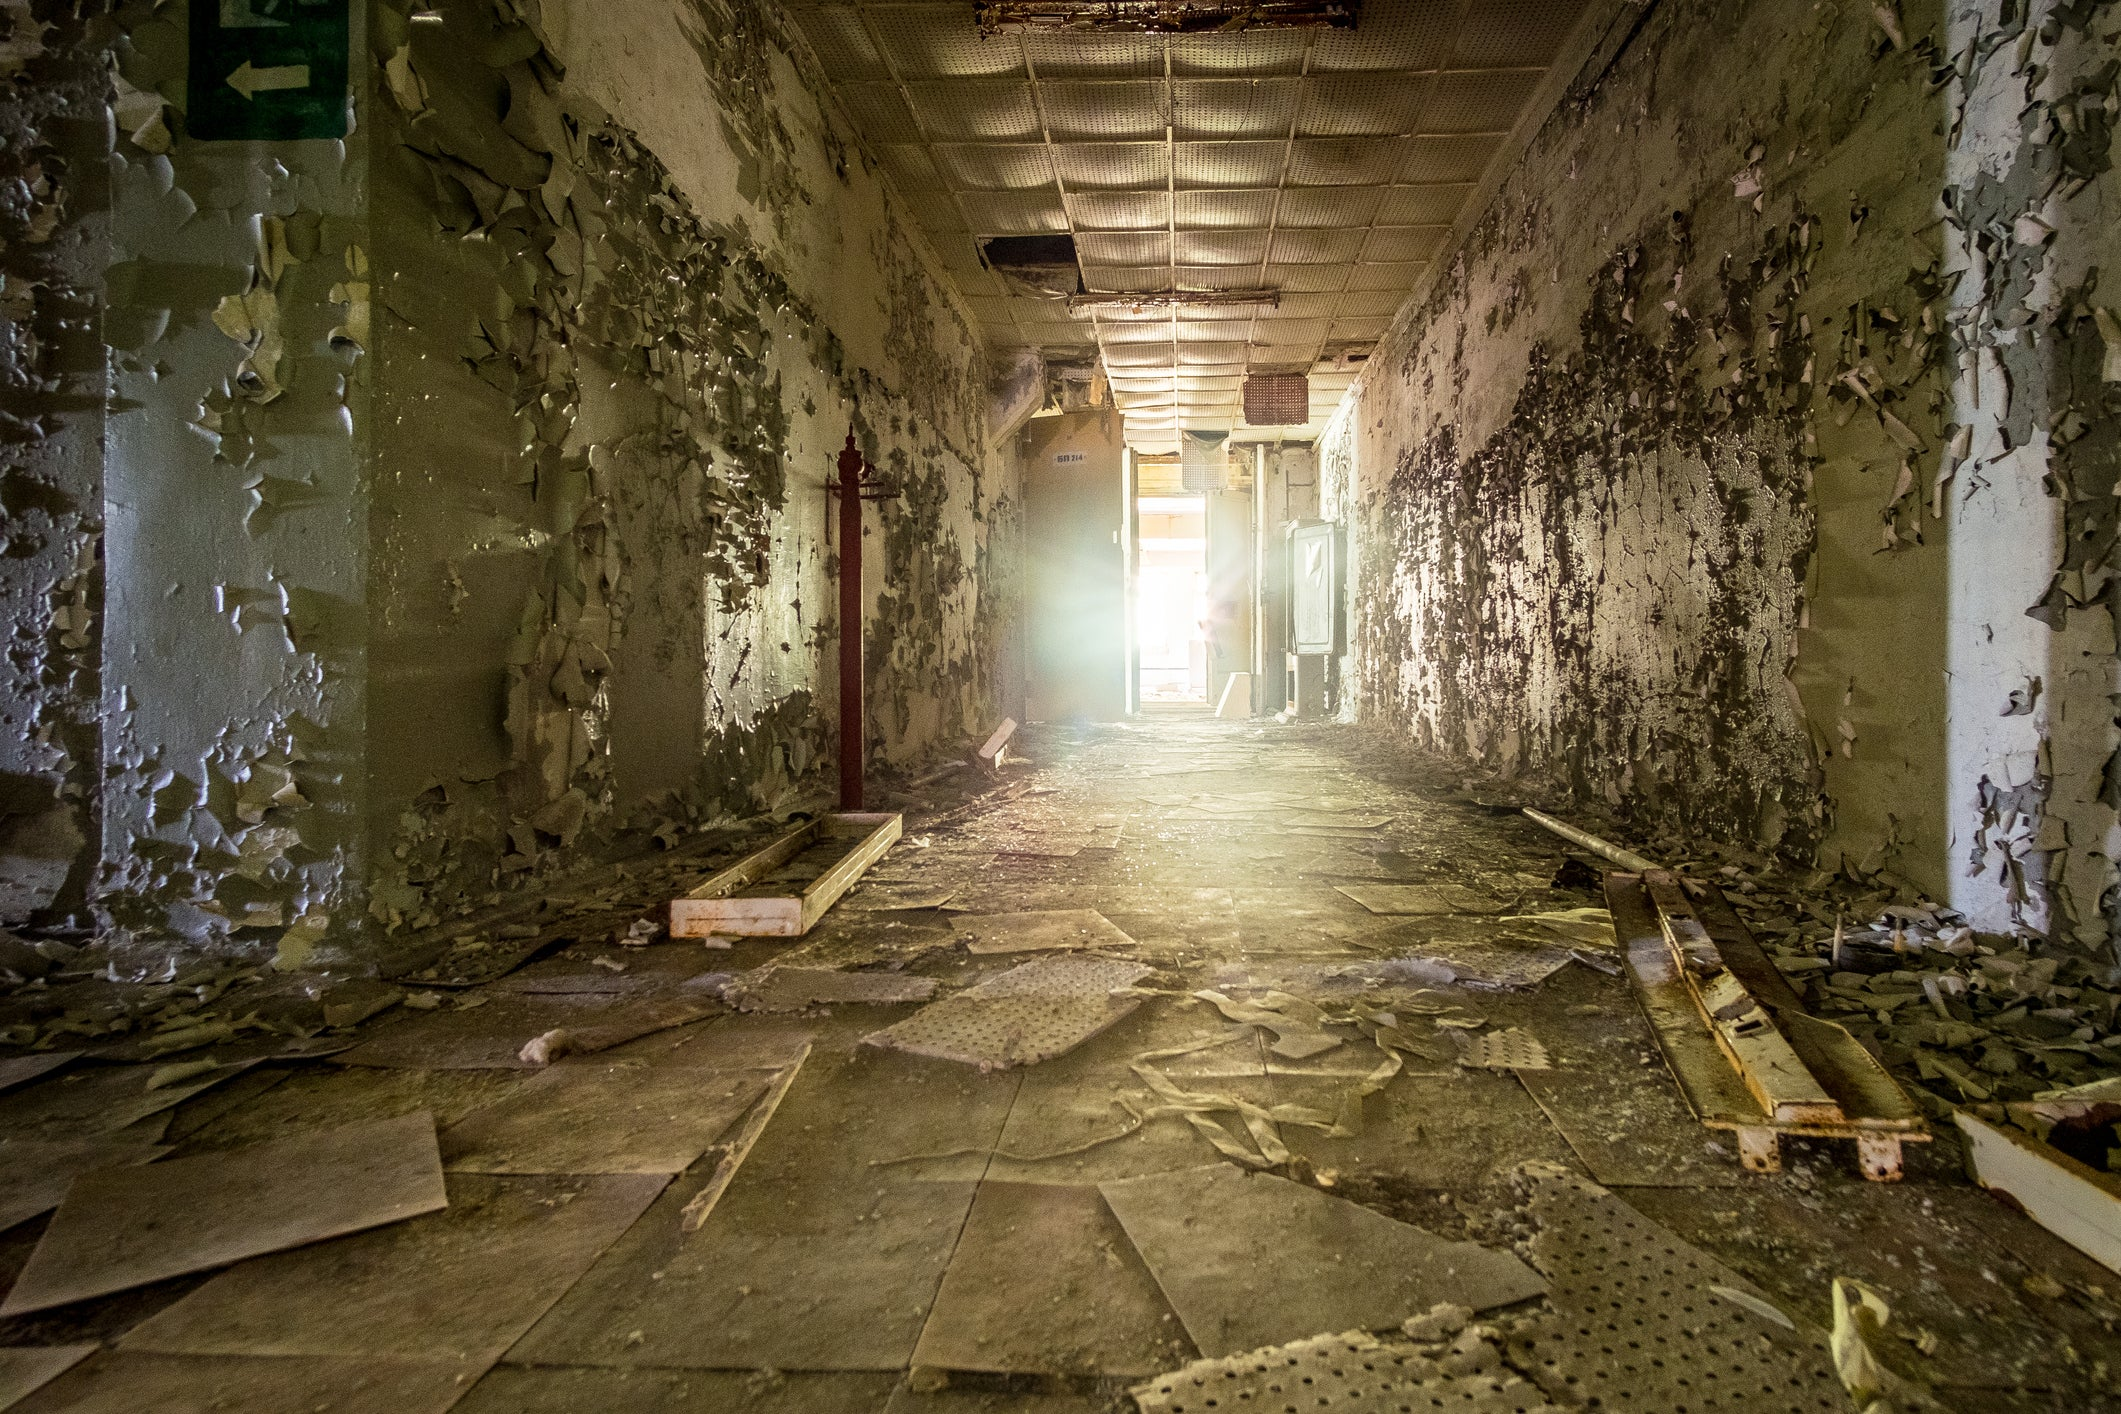 What Is Chernobyl Like Today? - Scientific American